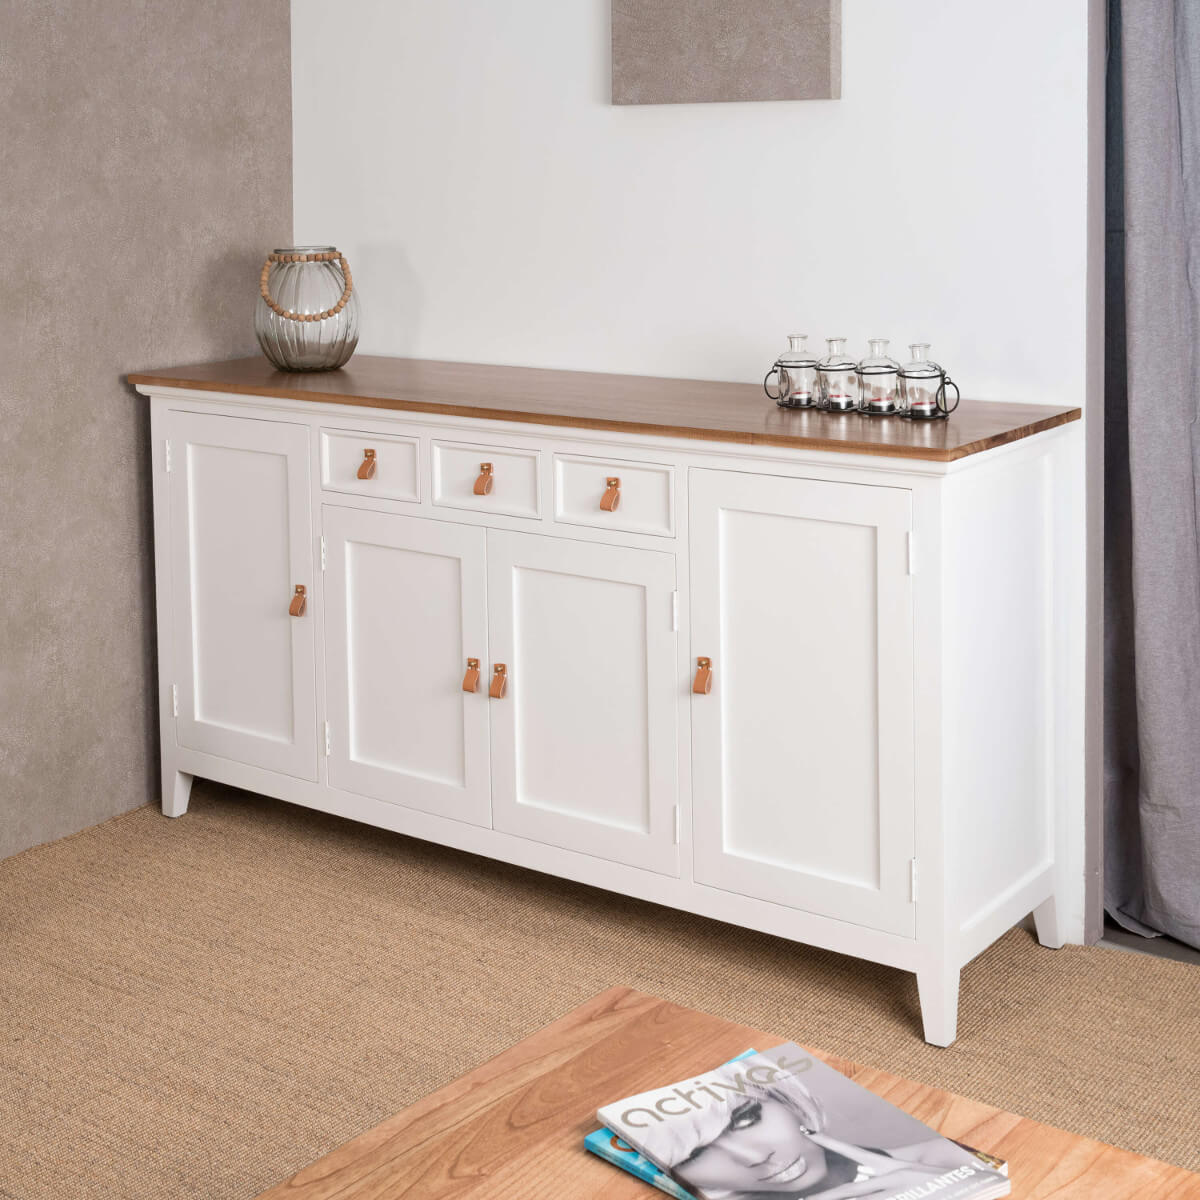 Buffet salon bois acajou et pin massif chic rectangle for Salle de bain scandinave chic